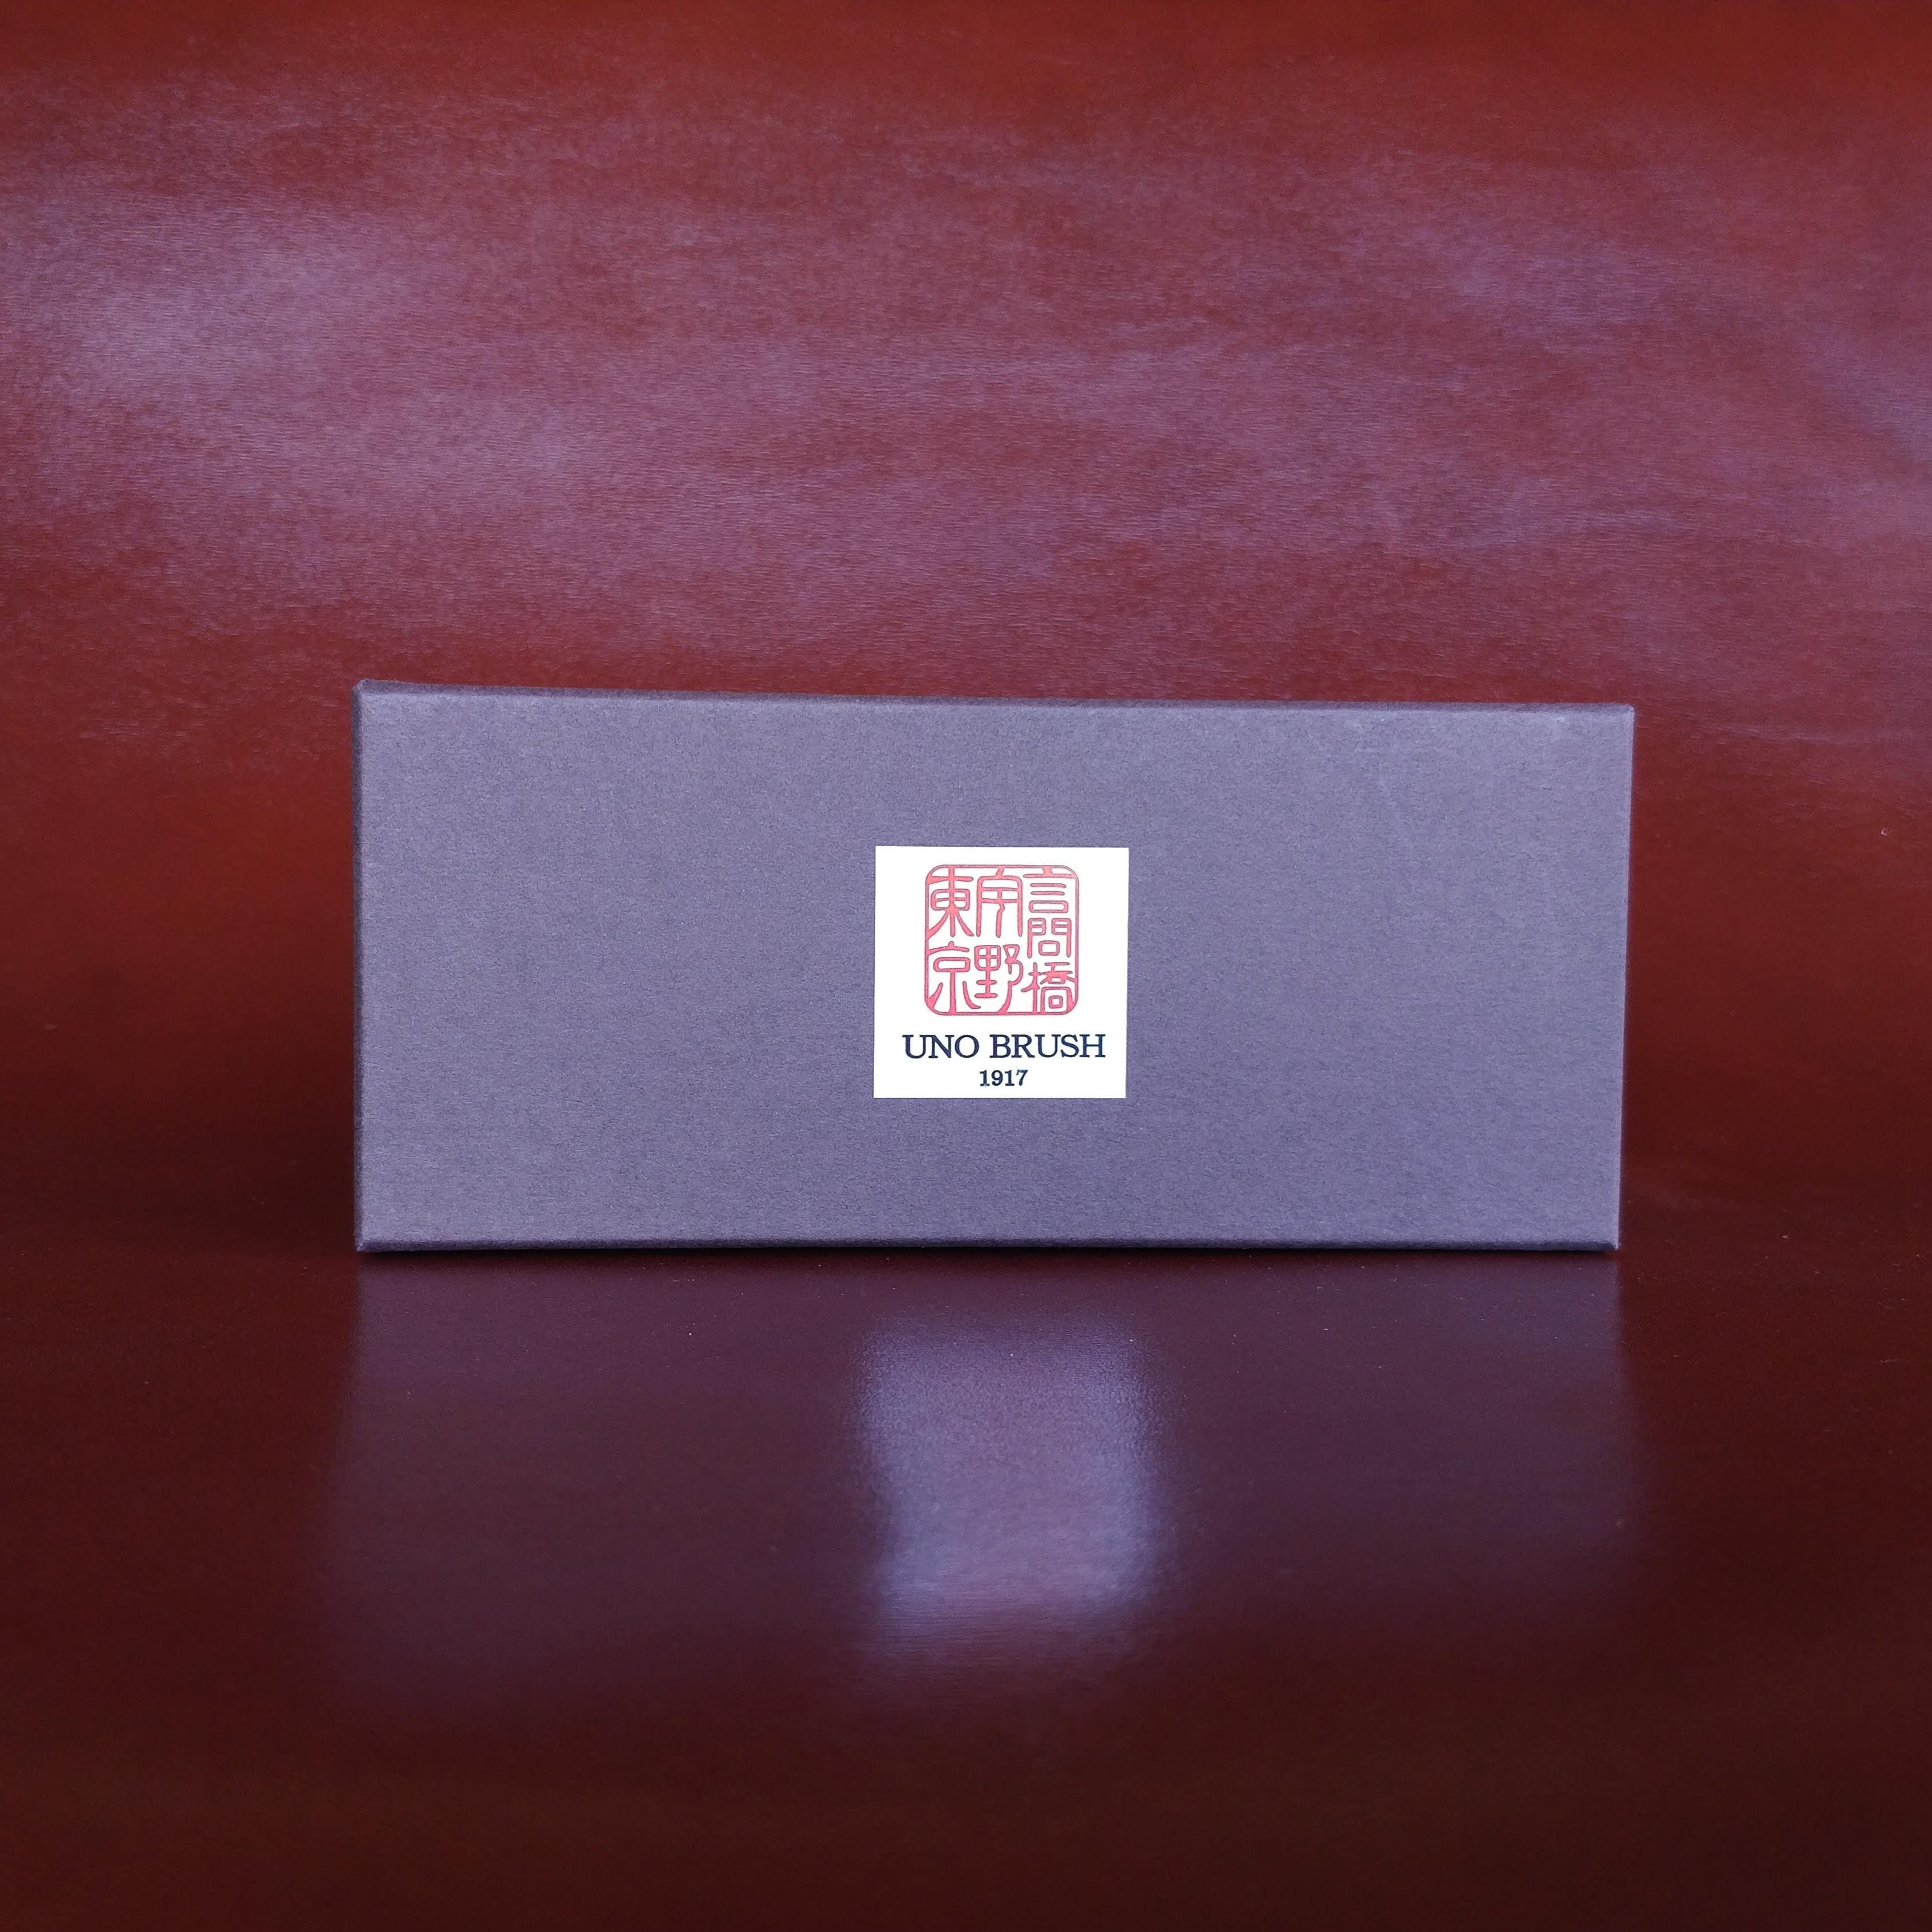 Unobrush shoe shine brush box